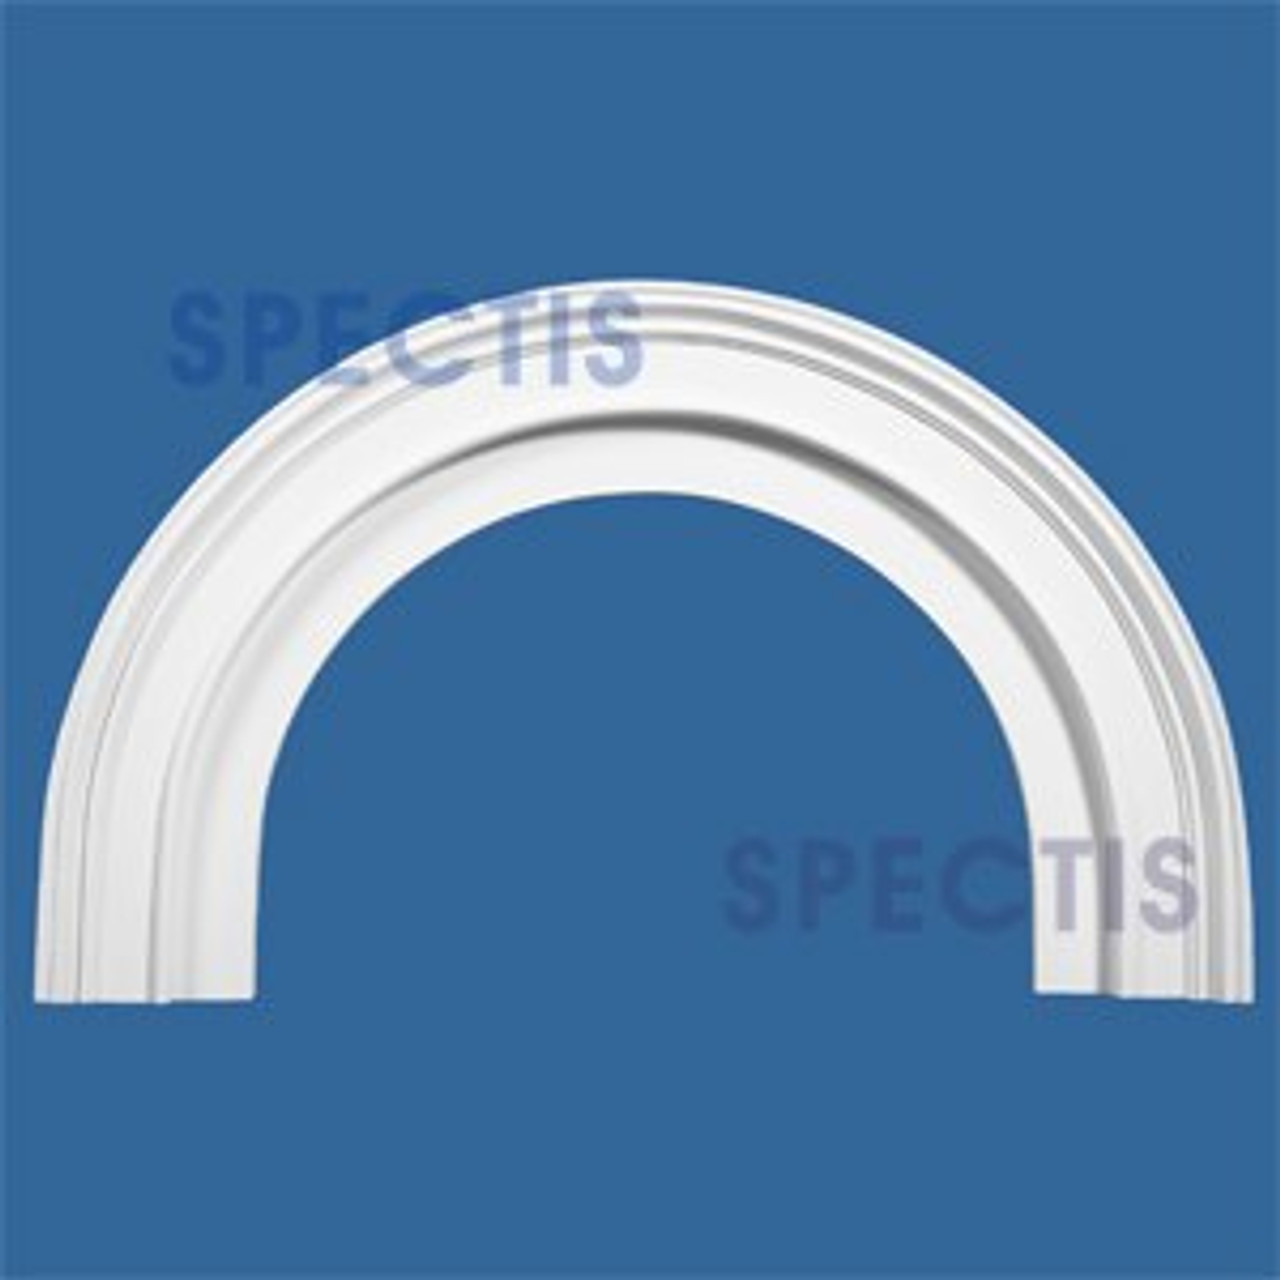 "AT1144-24 Arch Circle Top 5.5"" Wide - Fits 24"" Opening"